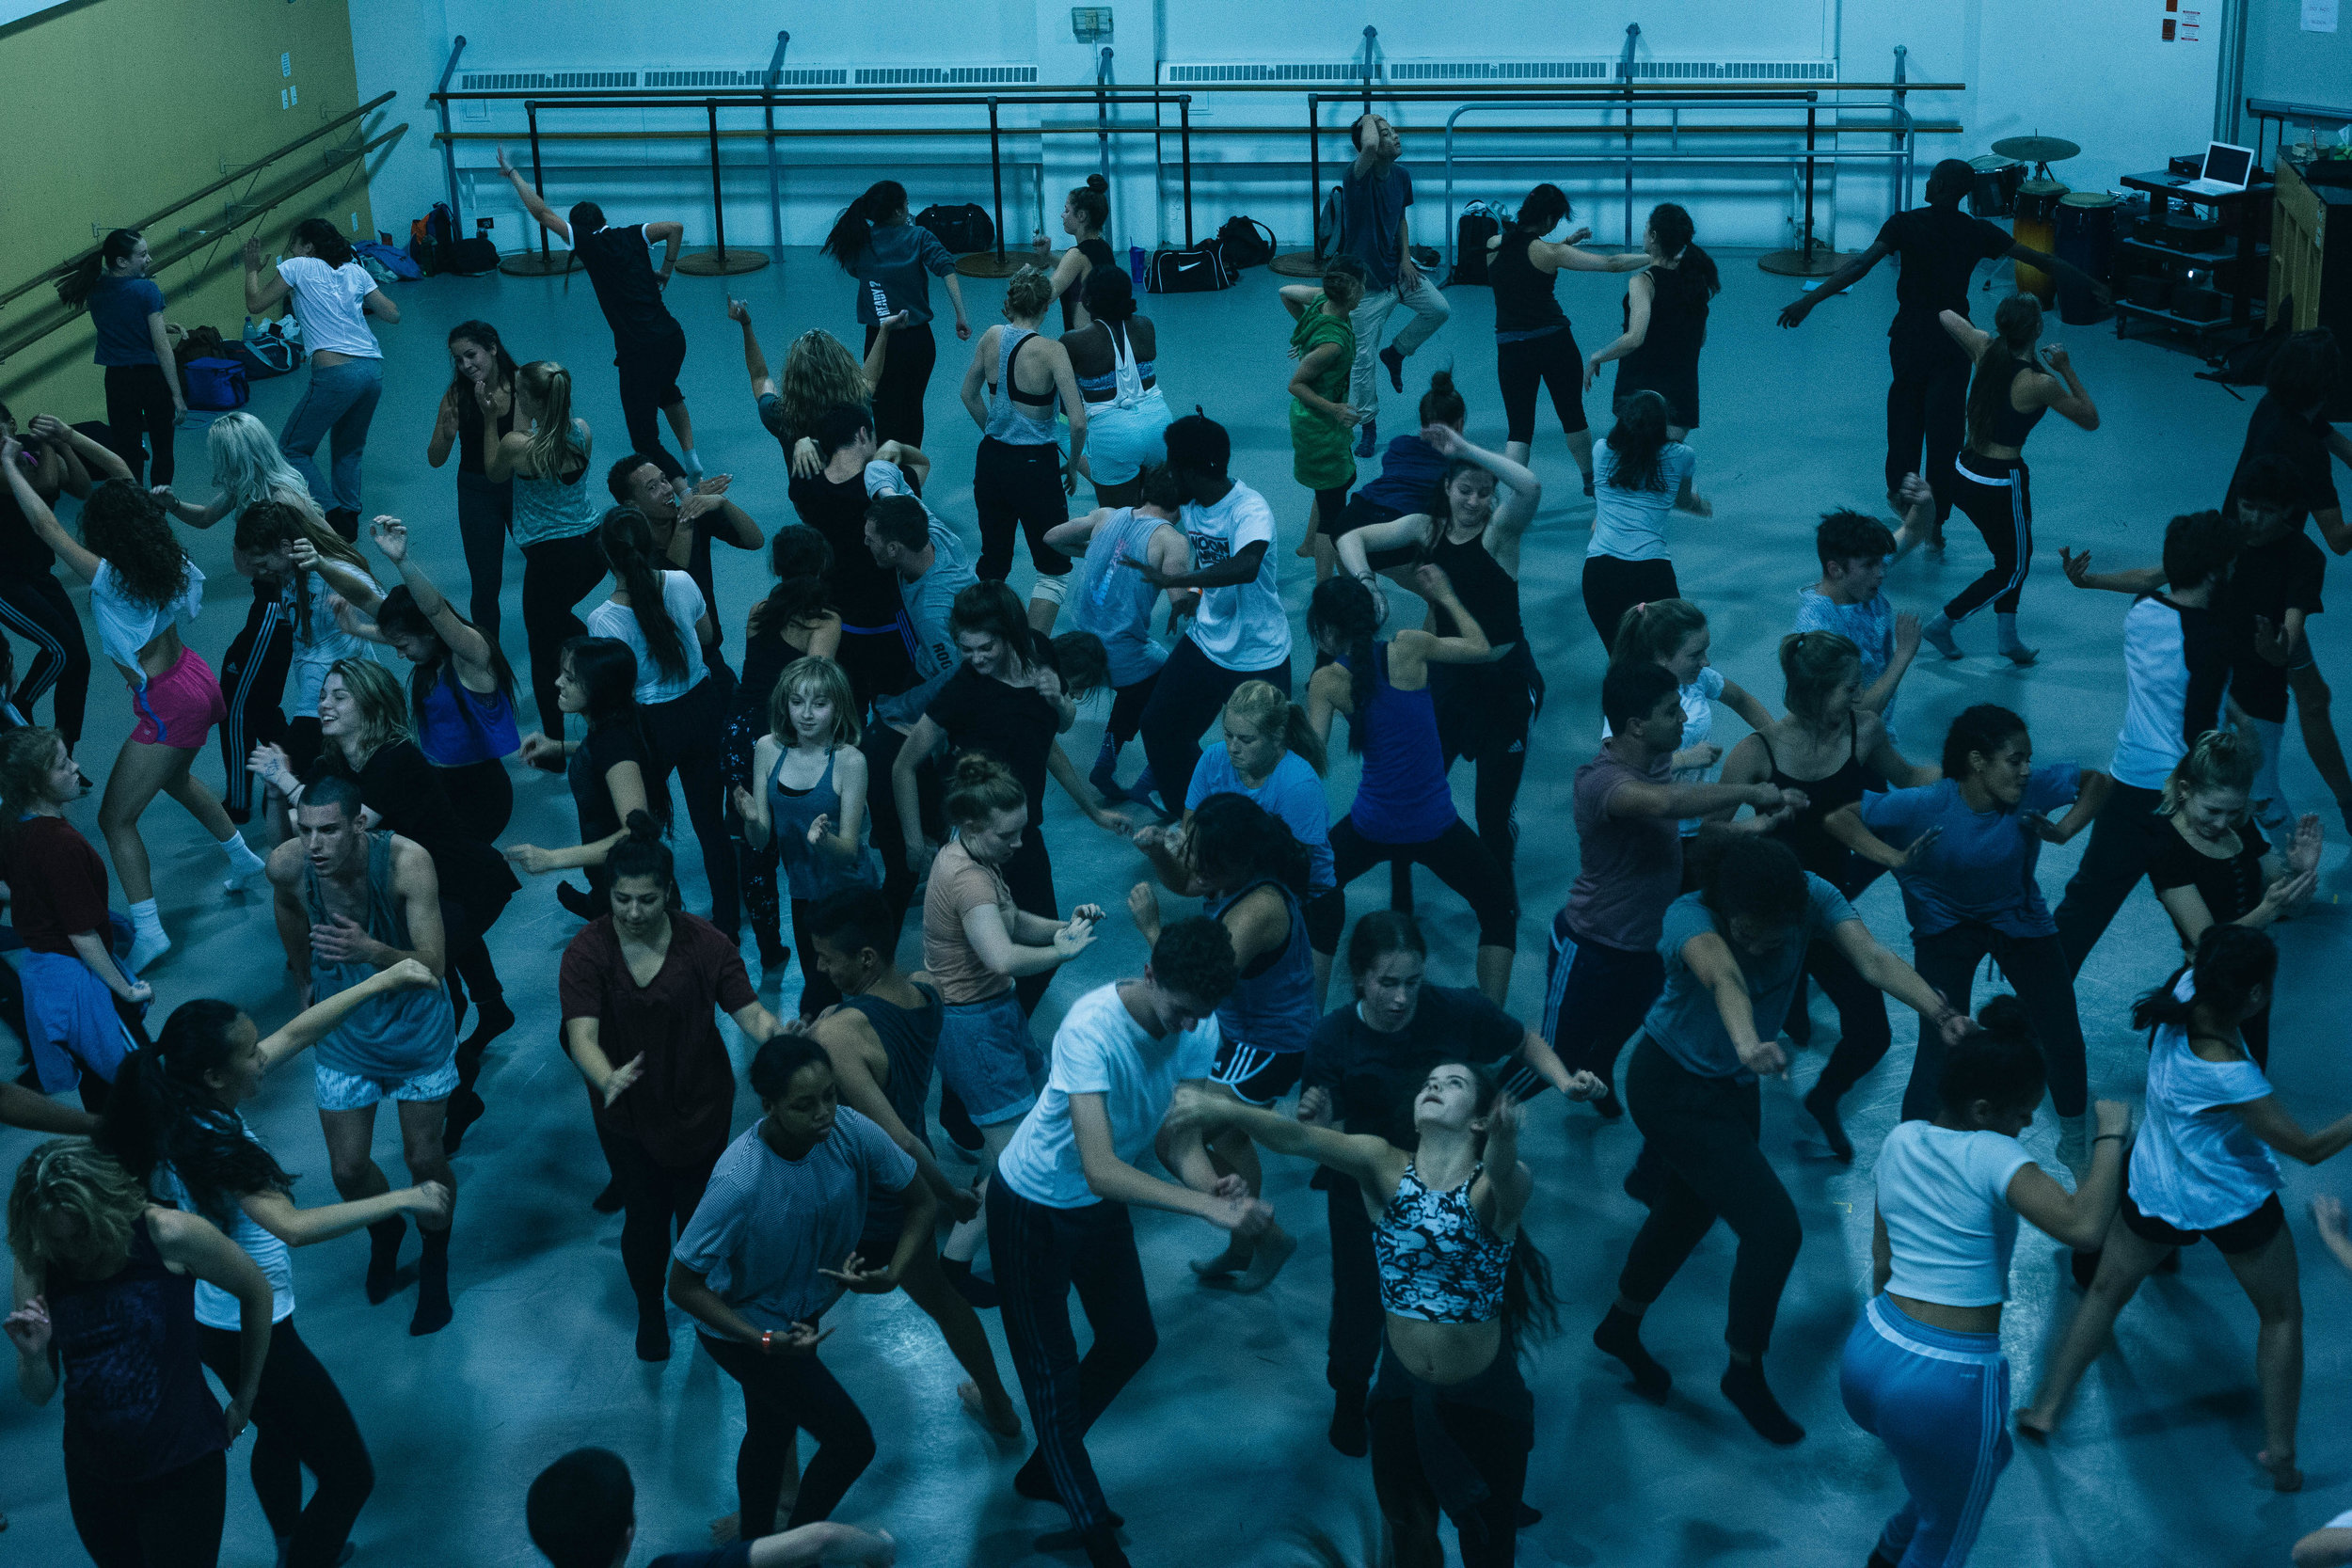 An Improv Jam session hosted by TOES FOR DANCE at Canadian Contemporary Dance Theatre.